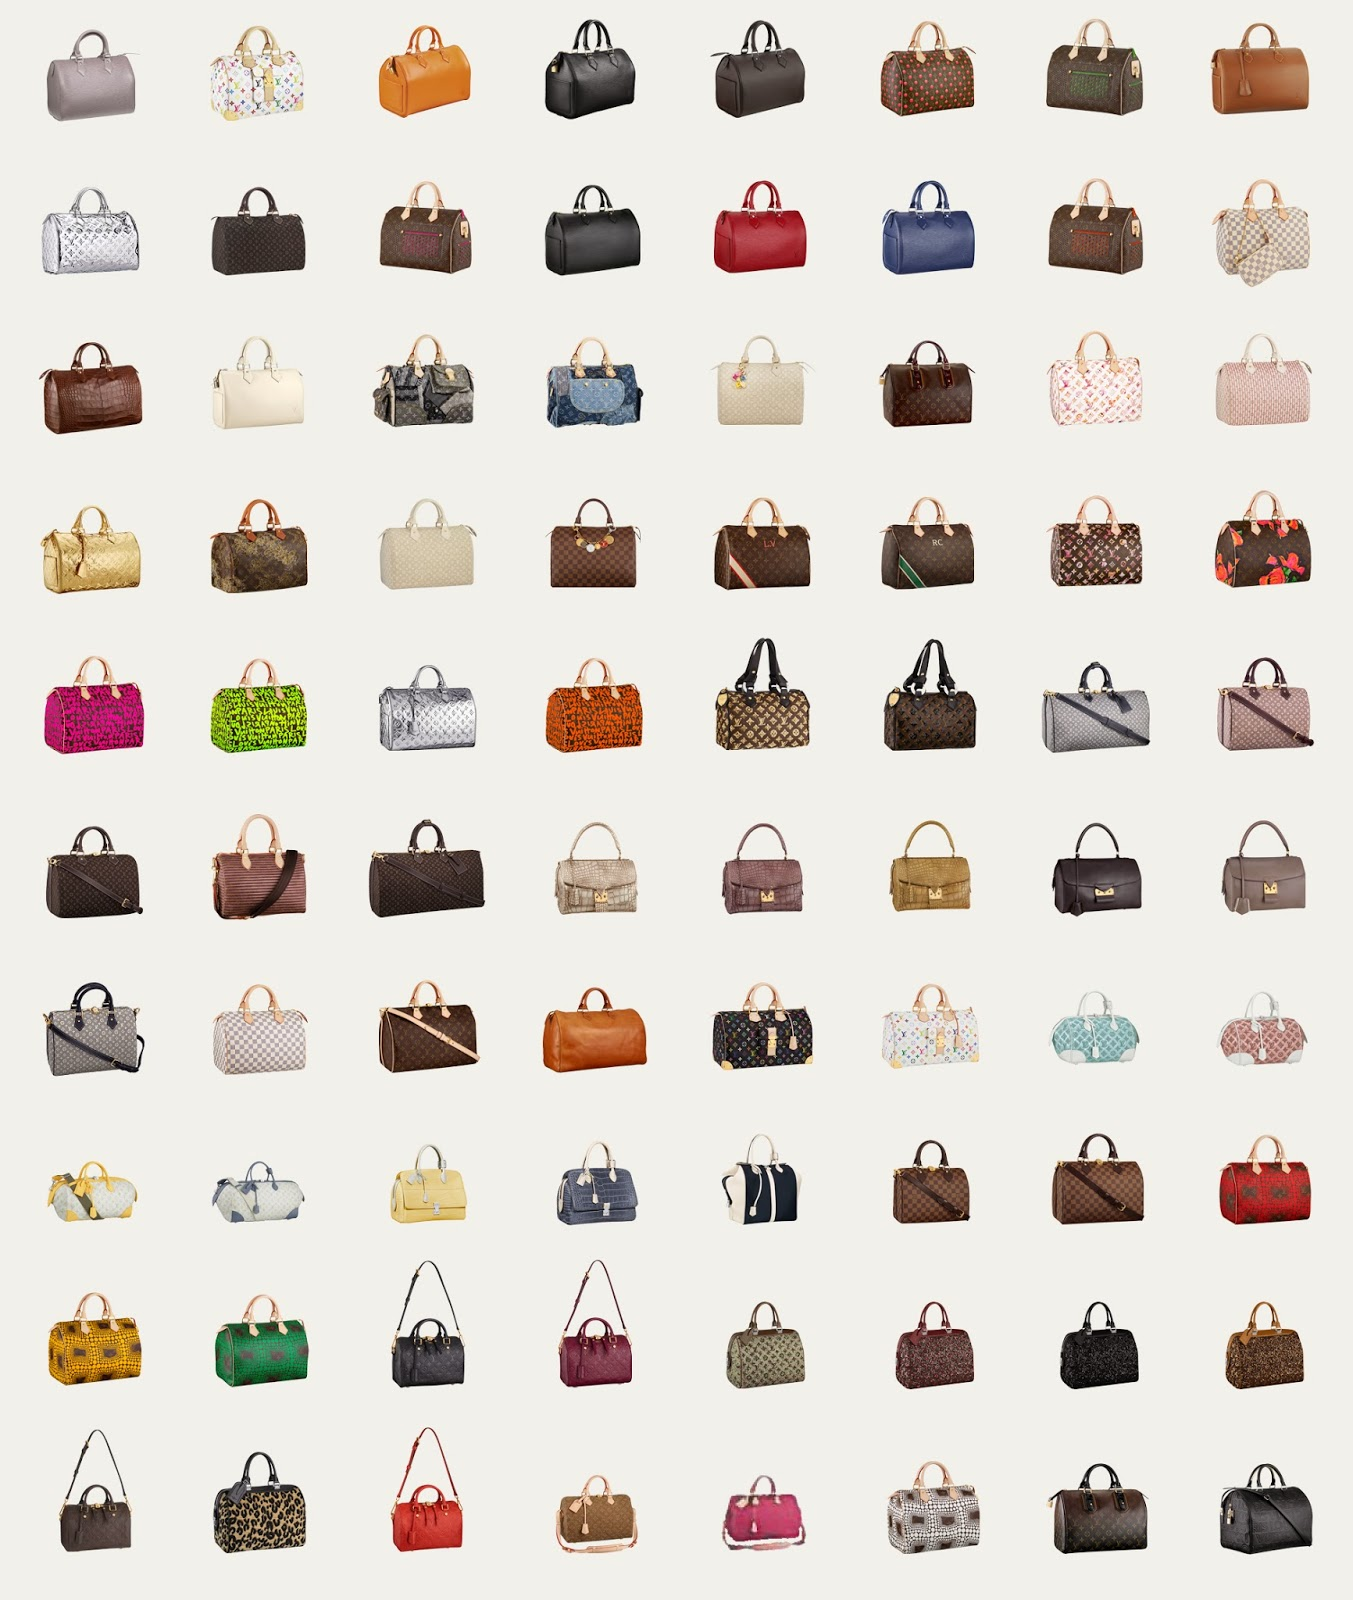 louis vuitton city bags a natural history huffpost louis vuitton city bags a natural history